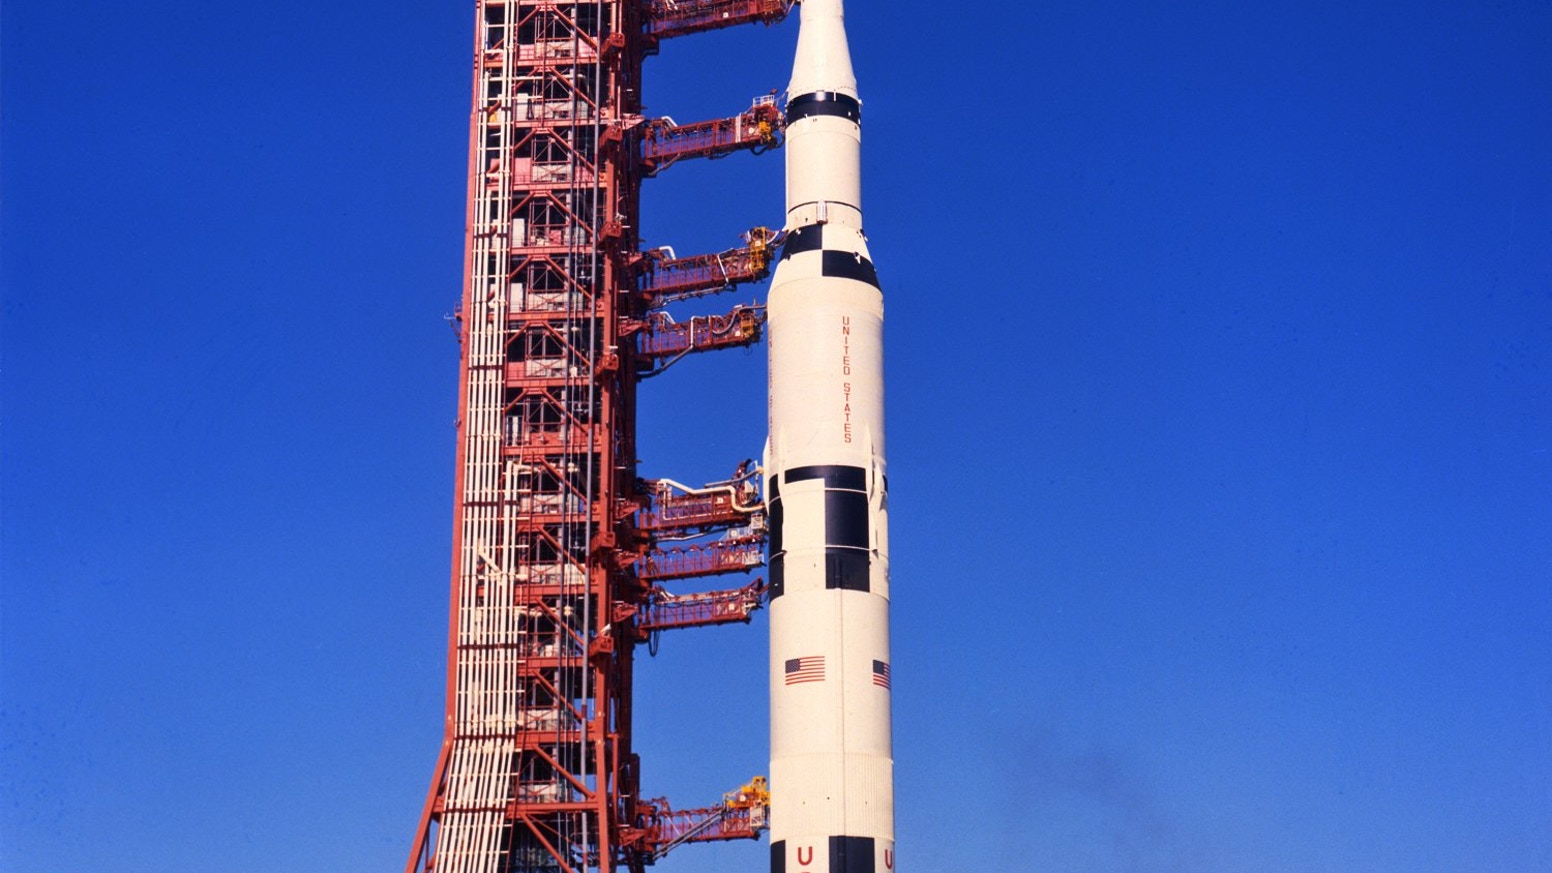 The ultimate way to display your Saturn V rocket model kit. Mobile launcher Apollo Saturn model kit in 3 different scales!